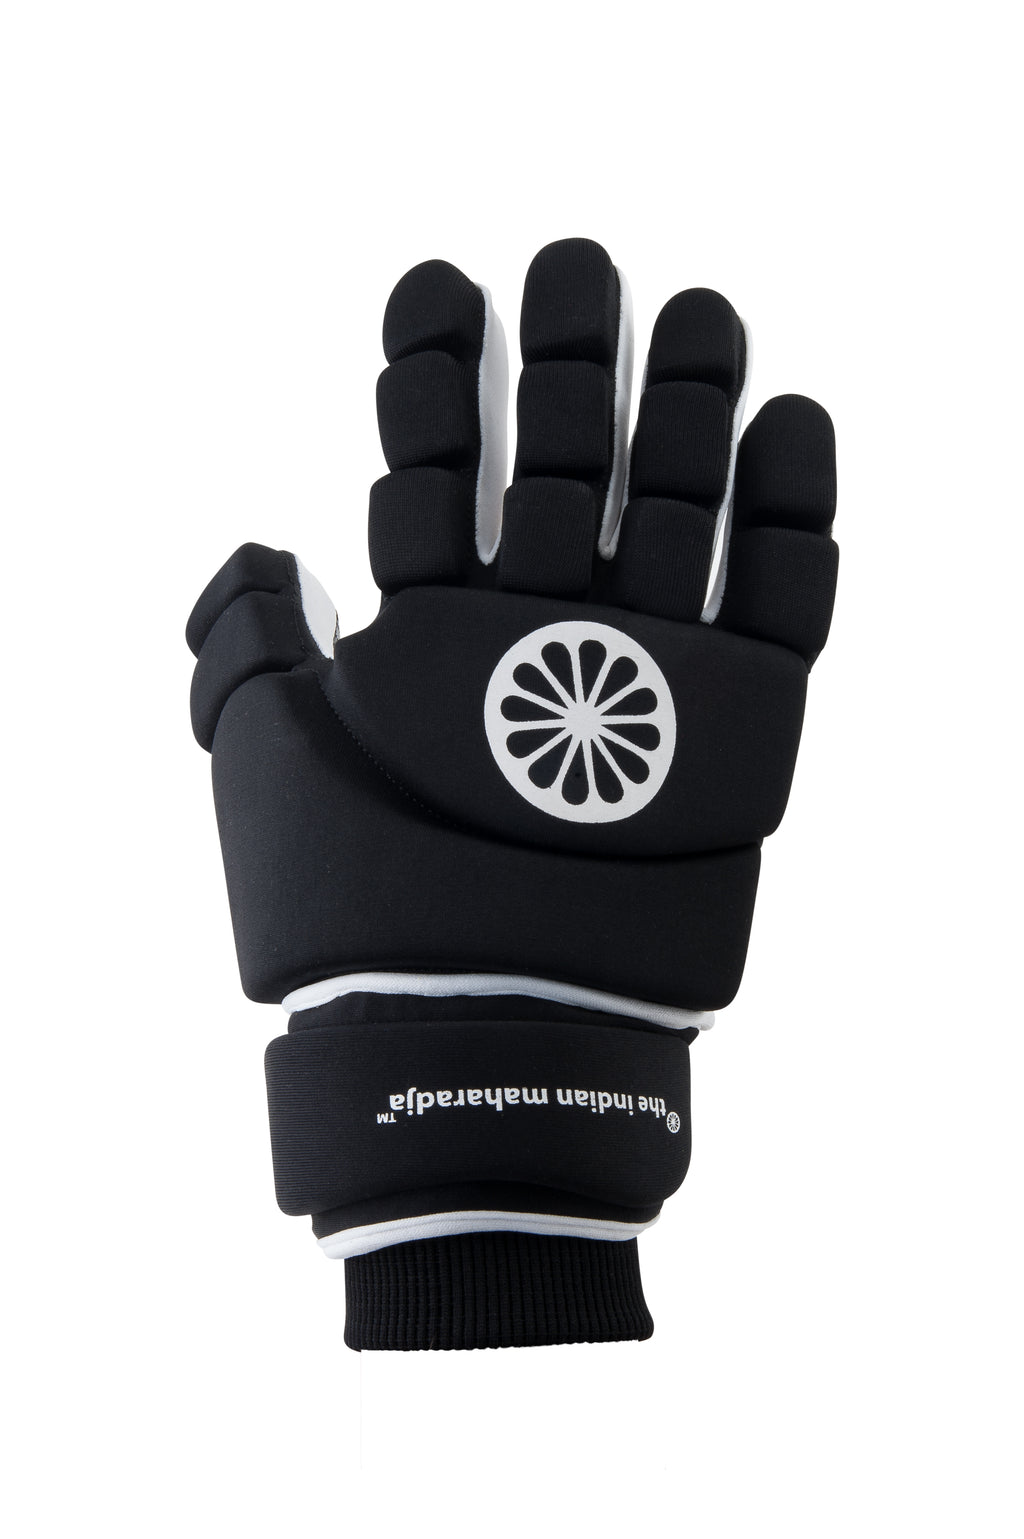 Guante de Hockey The Indian Maharadja Glove PRO full [right]-black